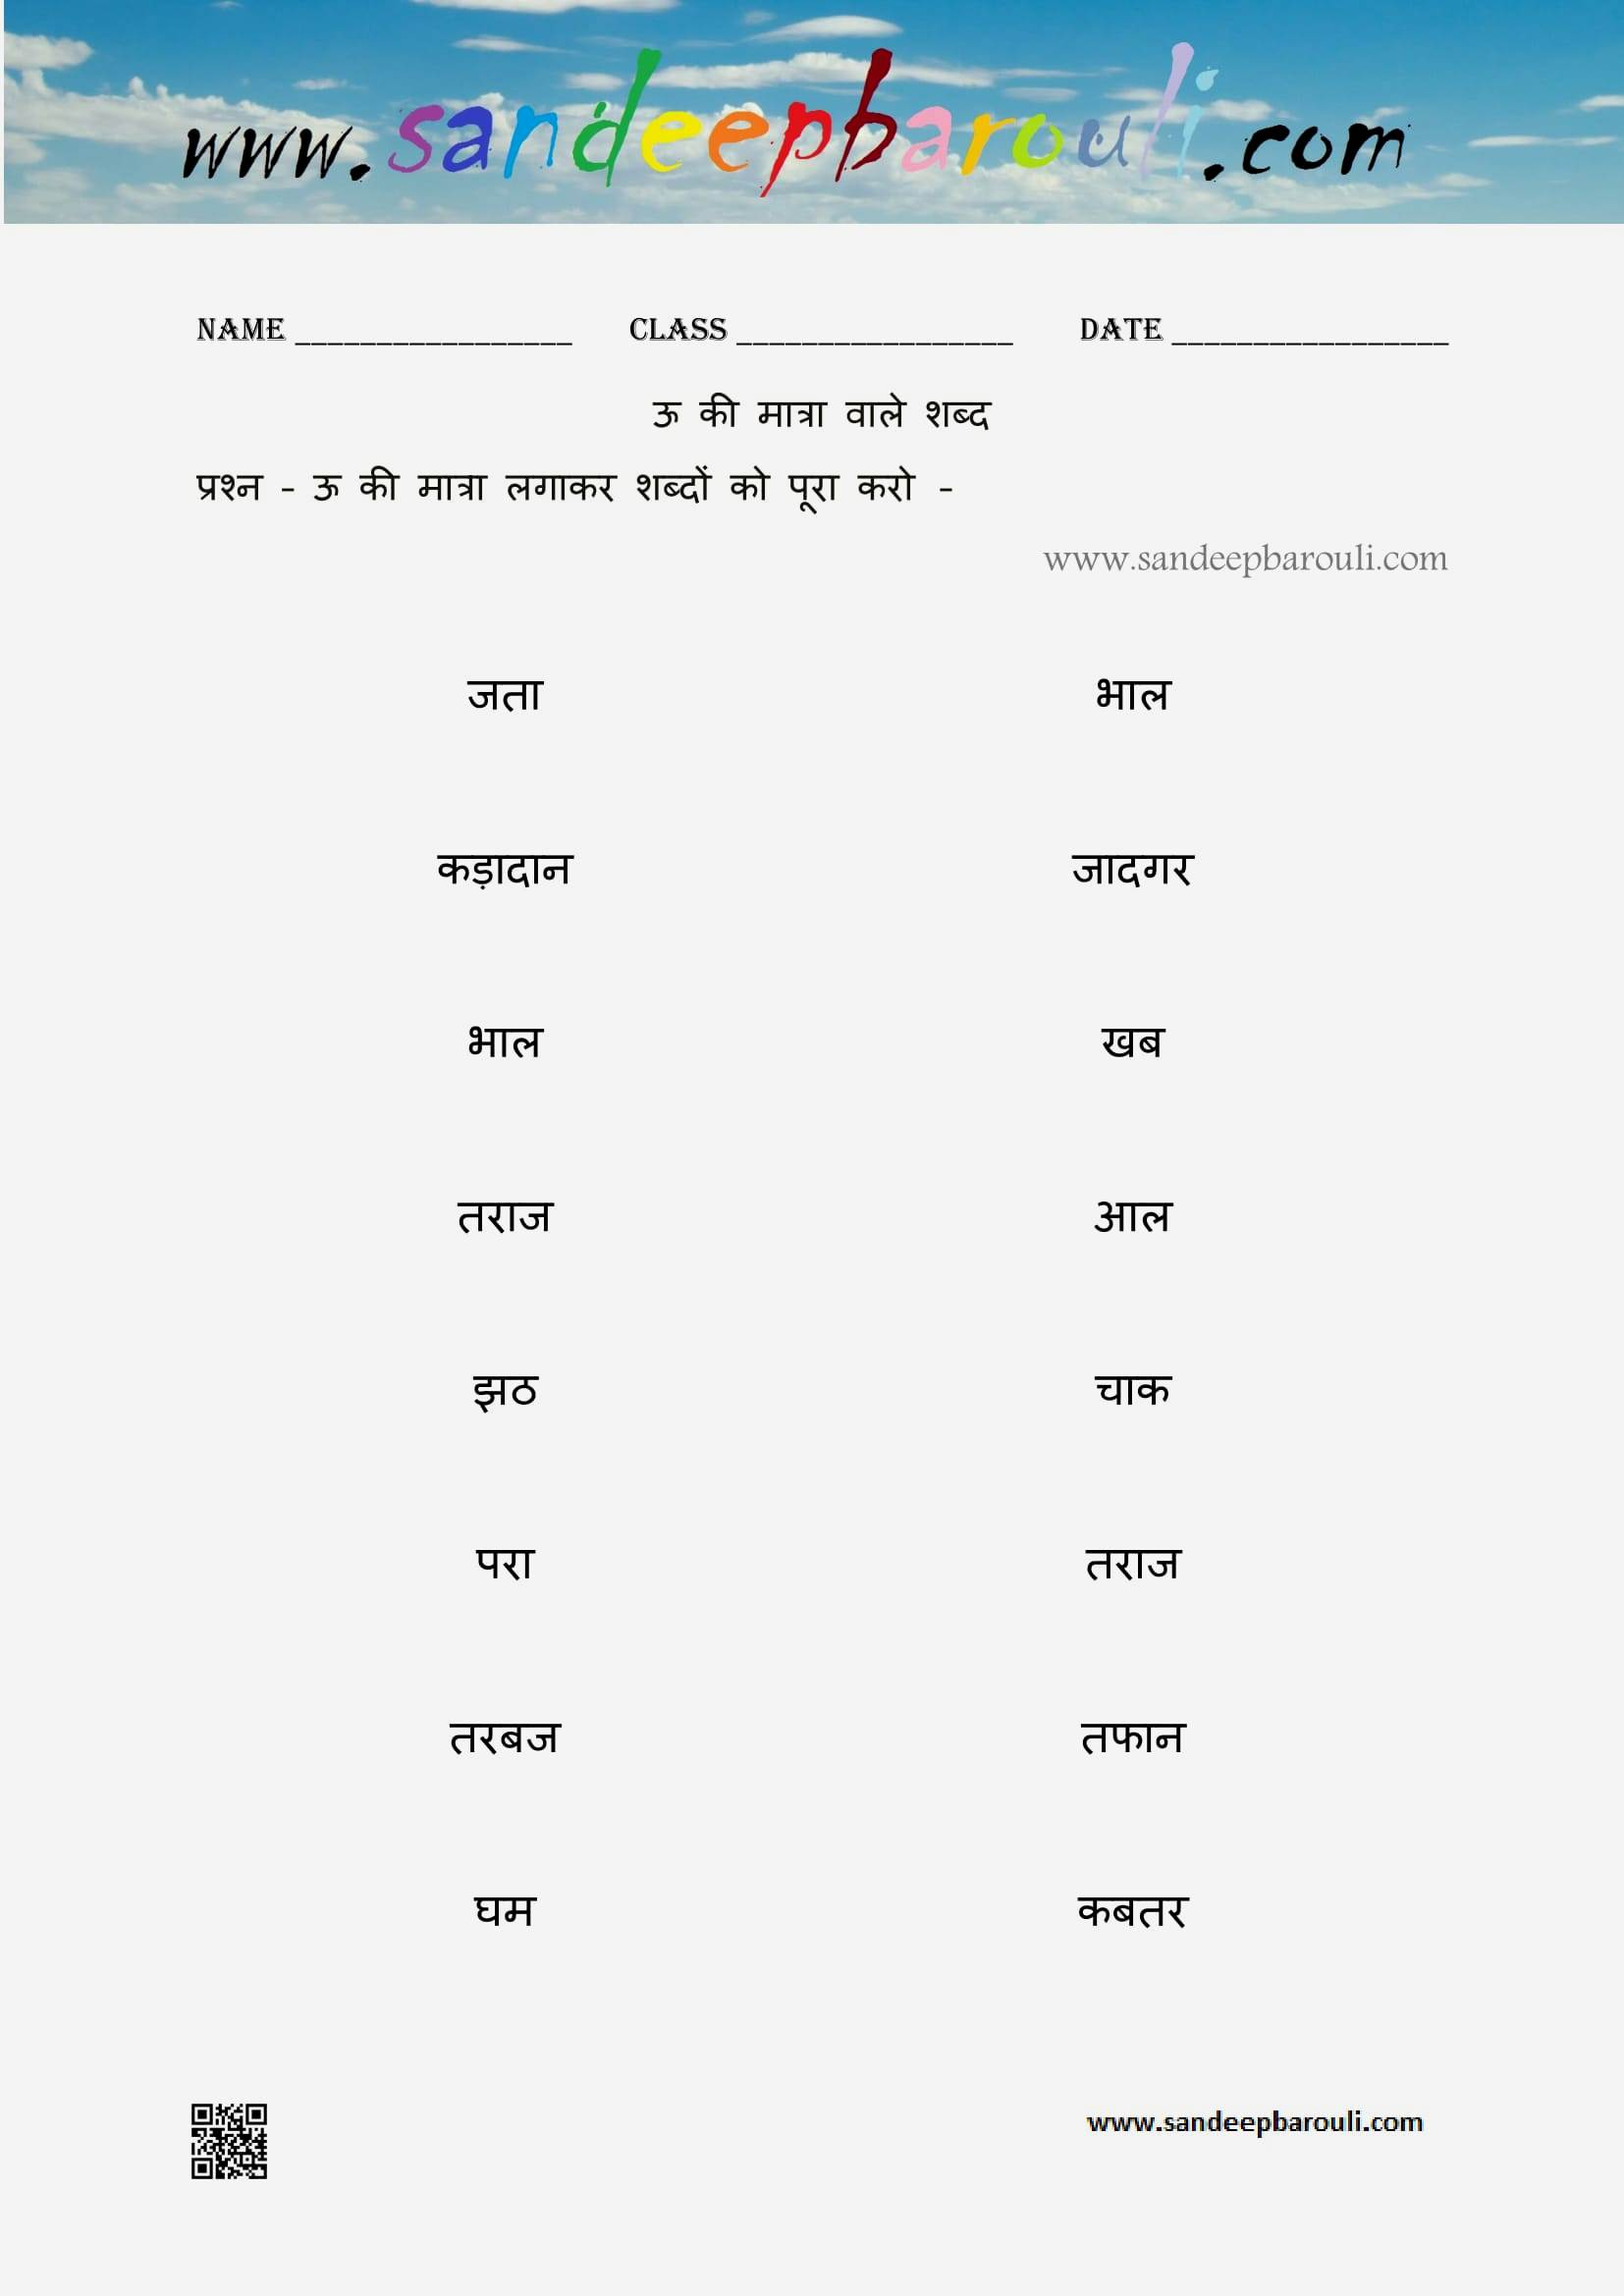 Worksheet 1 Sandeepbarouli